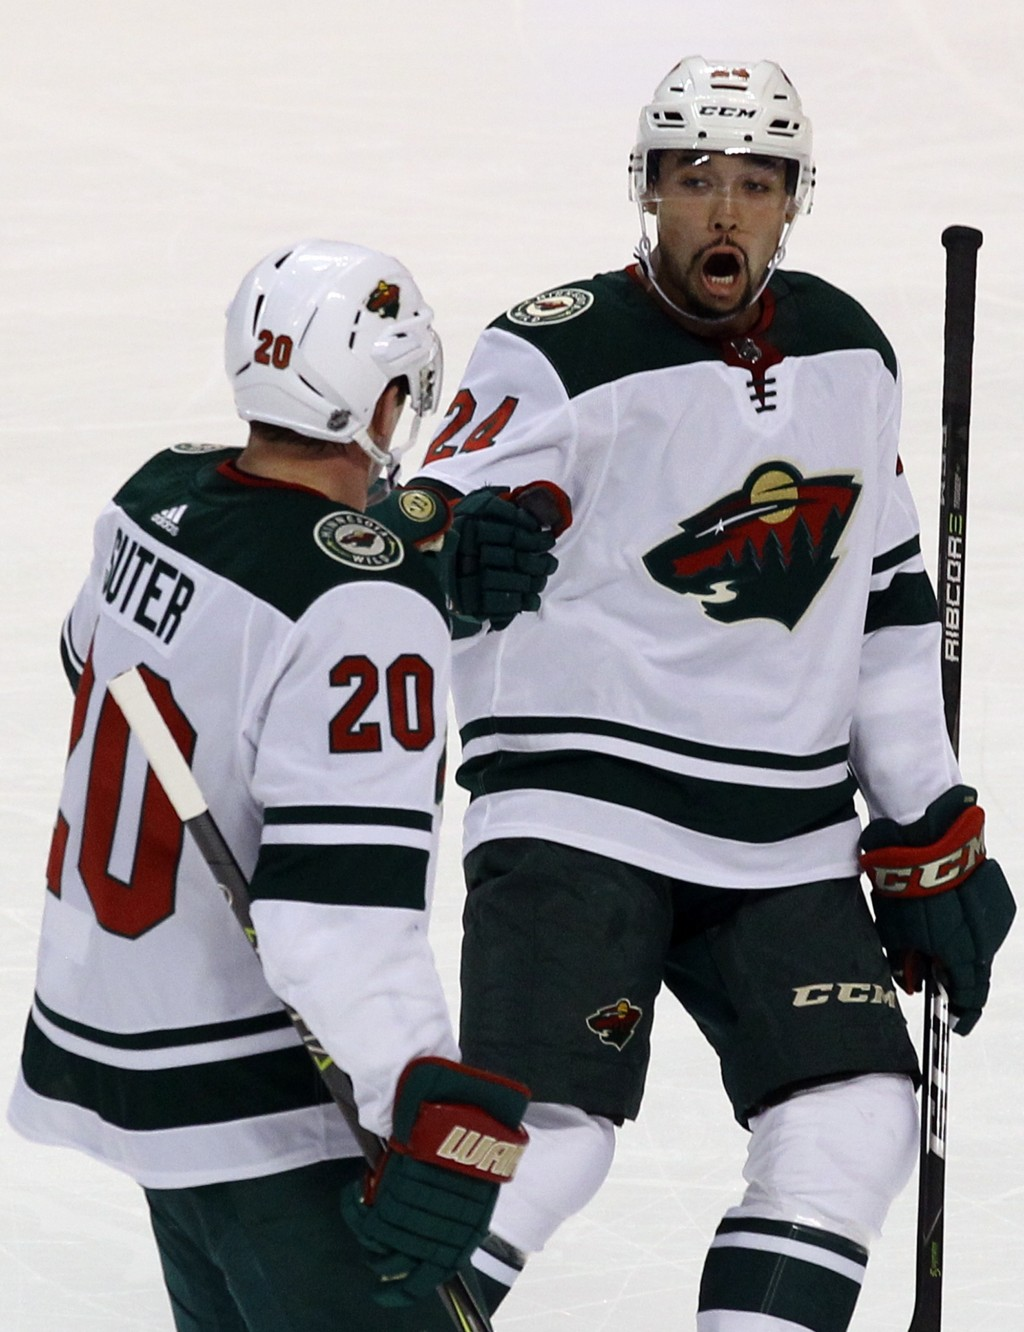 Minnesota Wild's Ryan Suter (20) celebrates with teammate Matt Dumba (24) after scoring a goal against the Florida Panthers during the first period of...